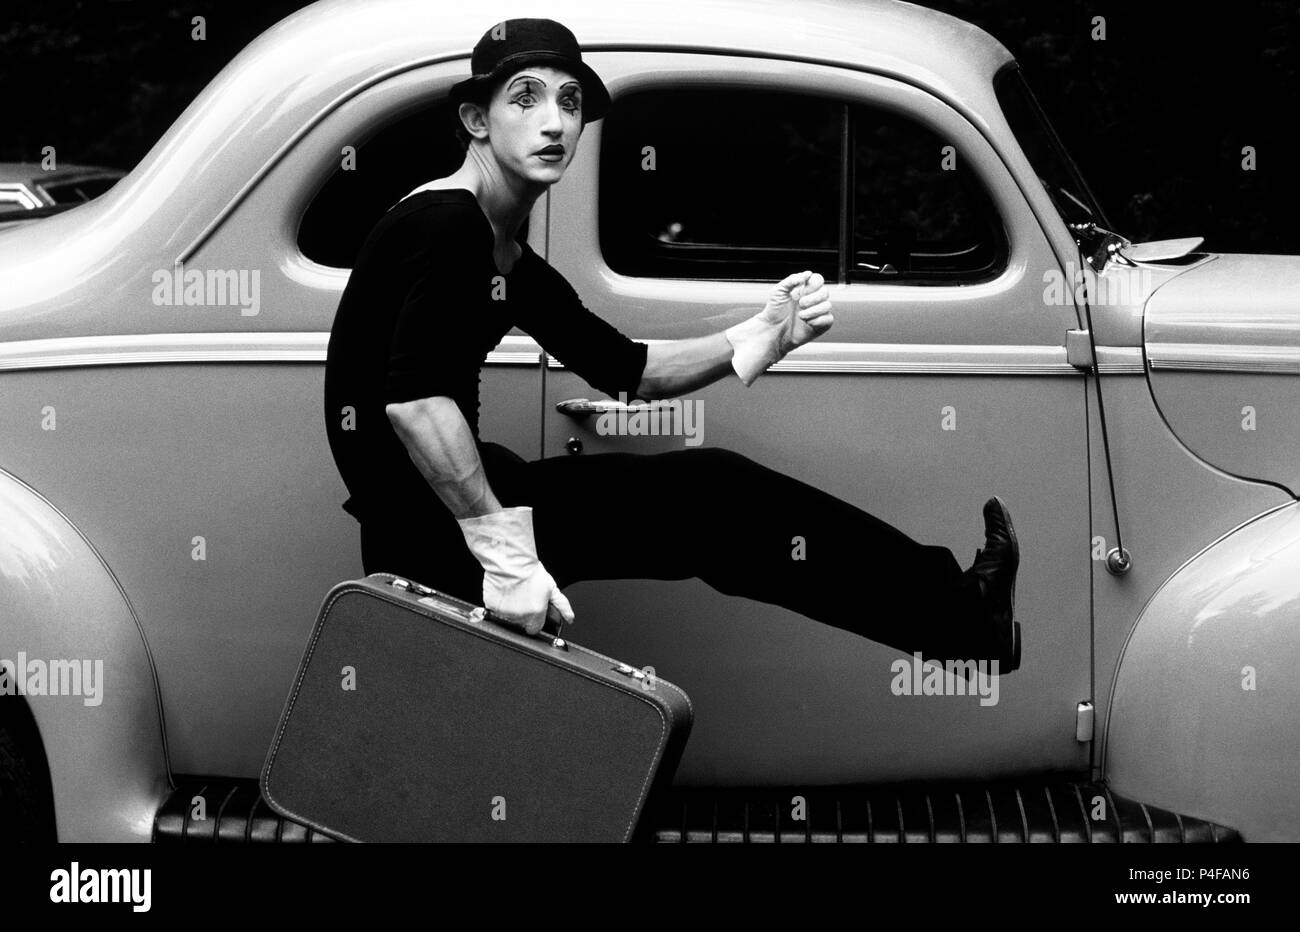 Mime running beside classic hot Rod Car - Stock Image